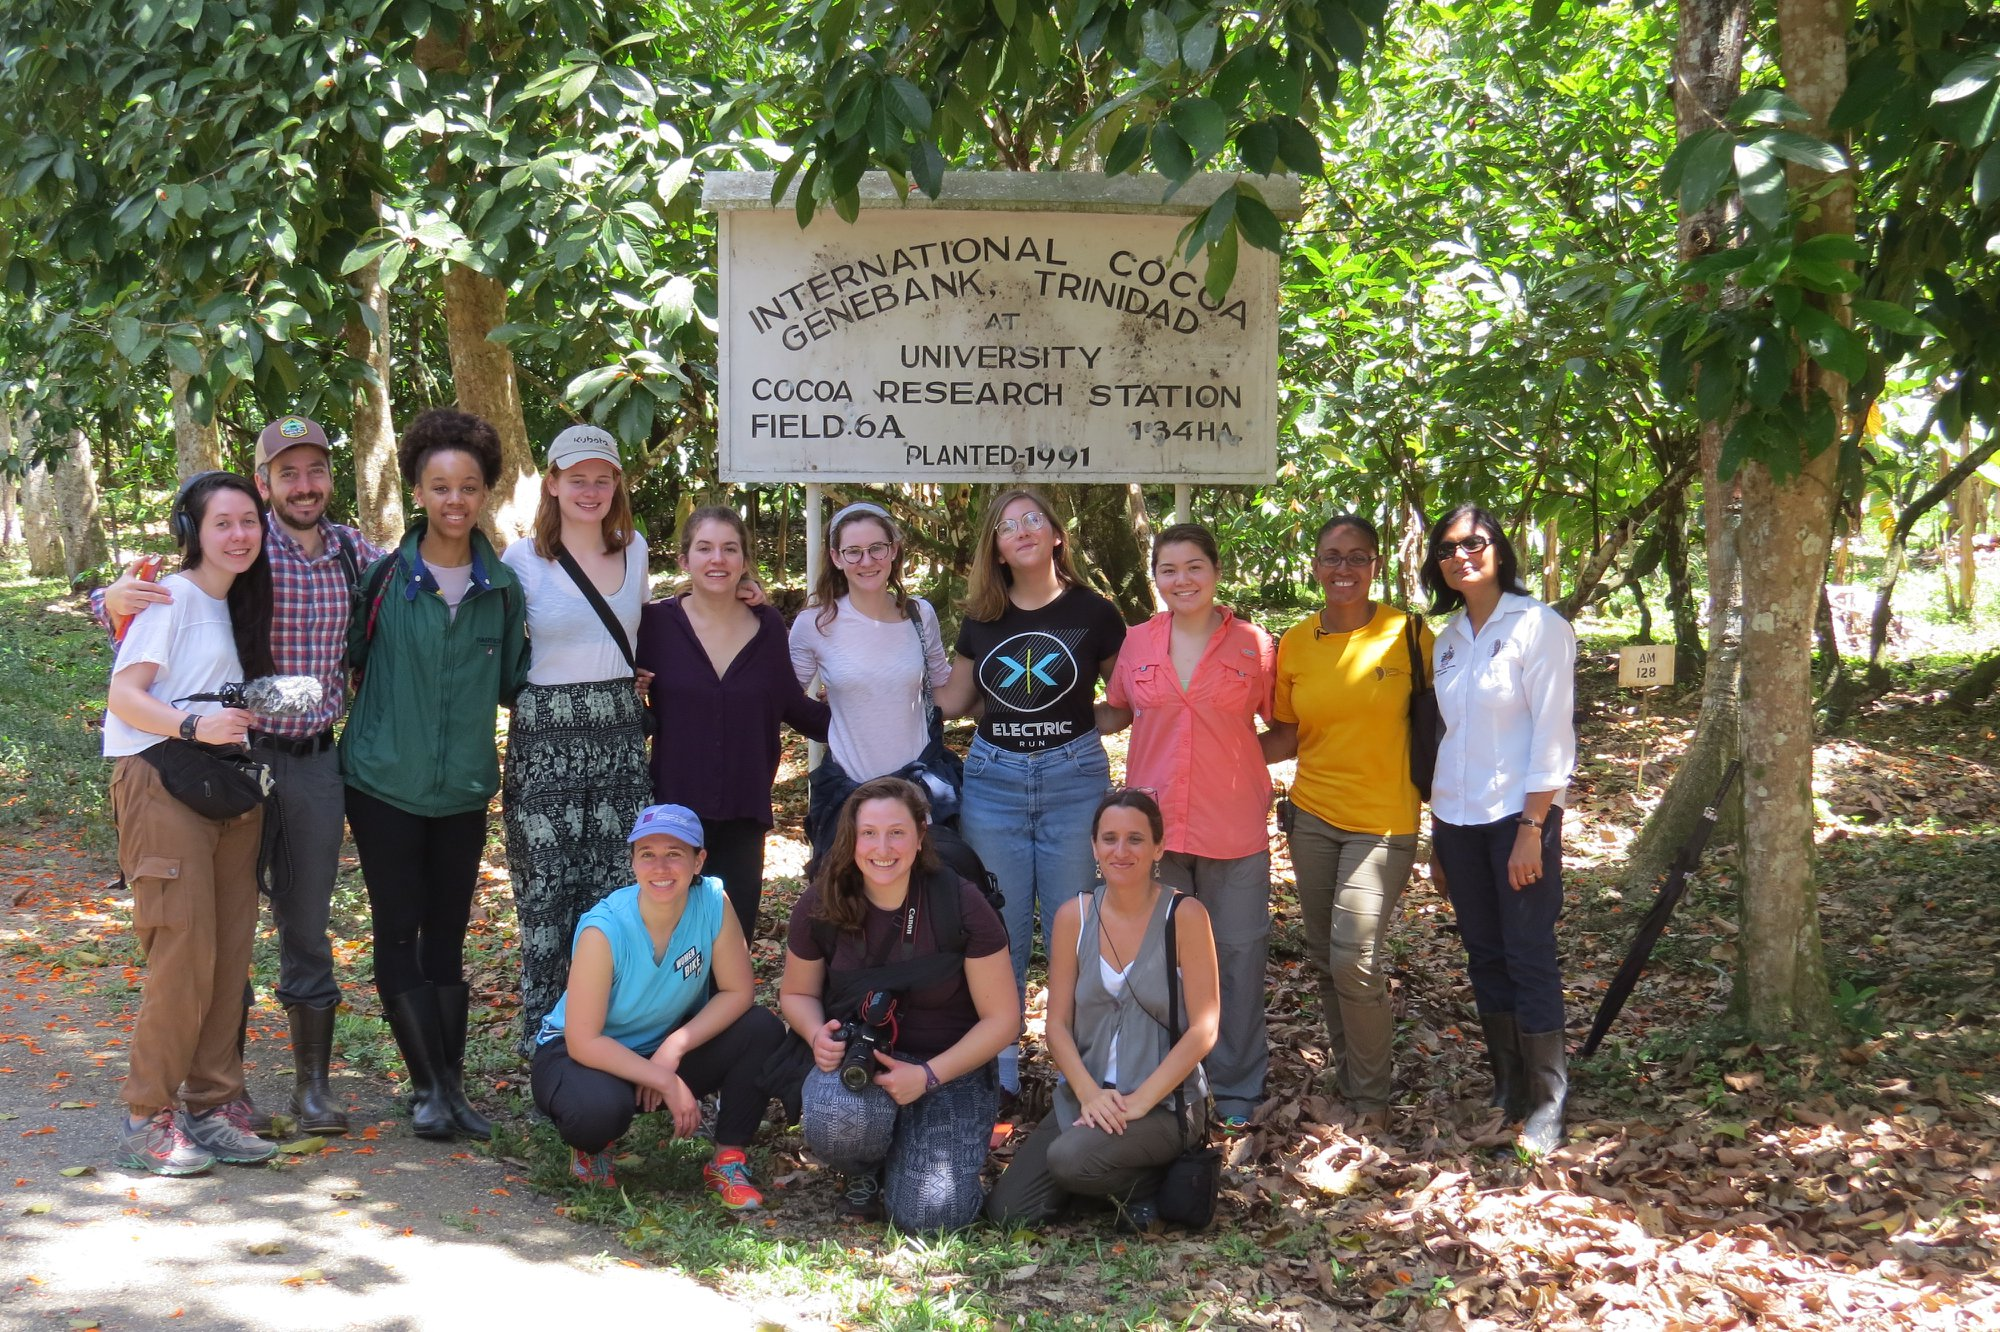 Members of the Economic Botany out in the field in Trinidad